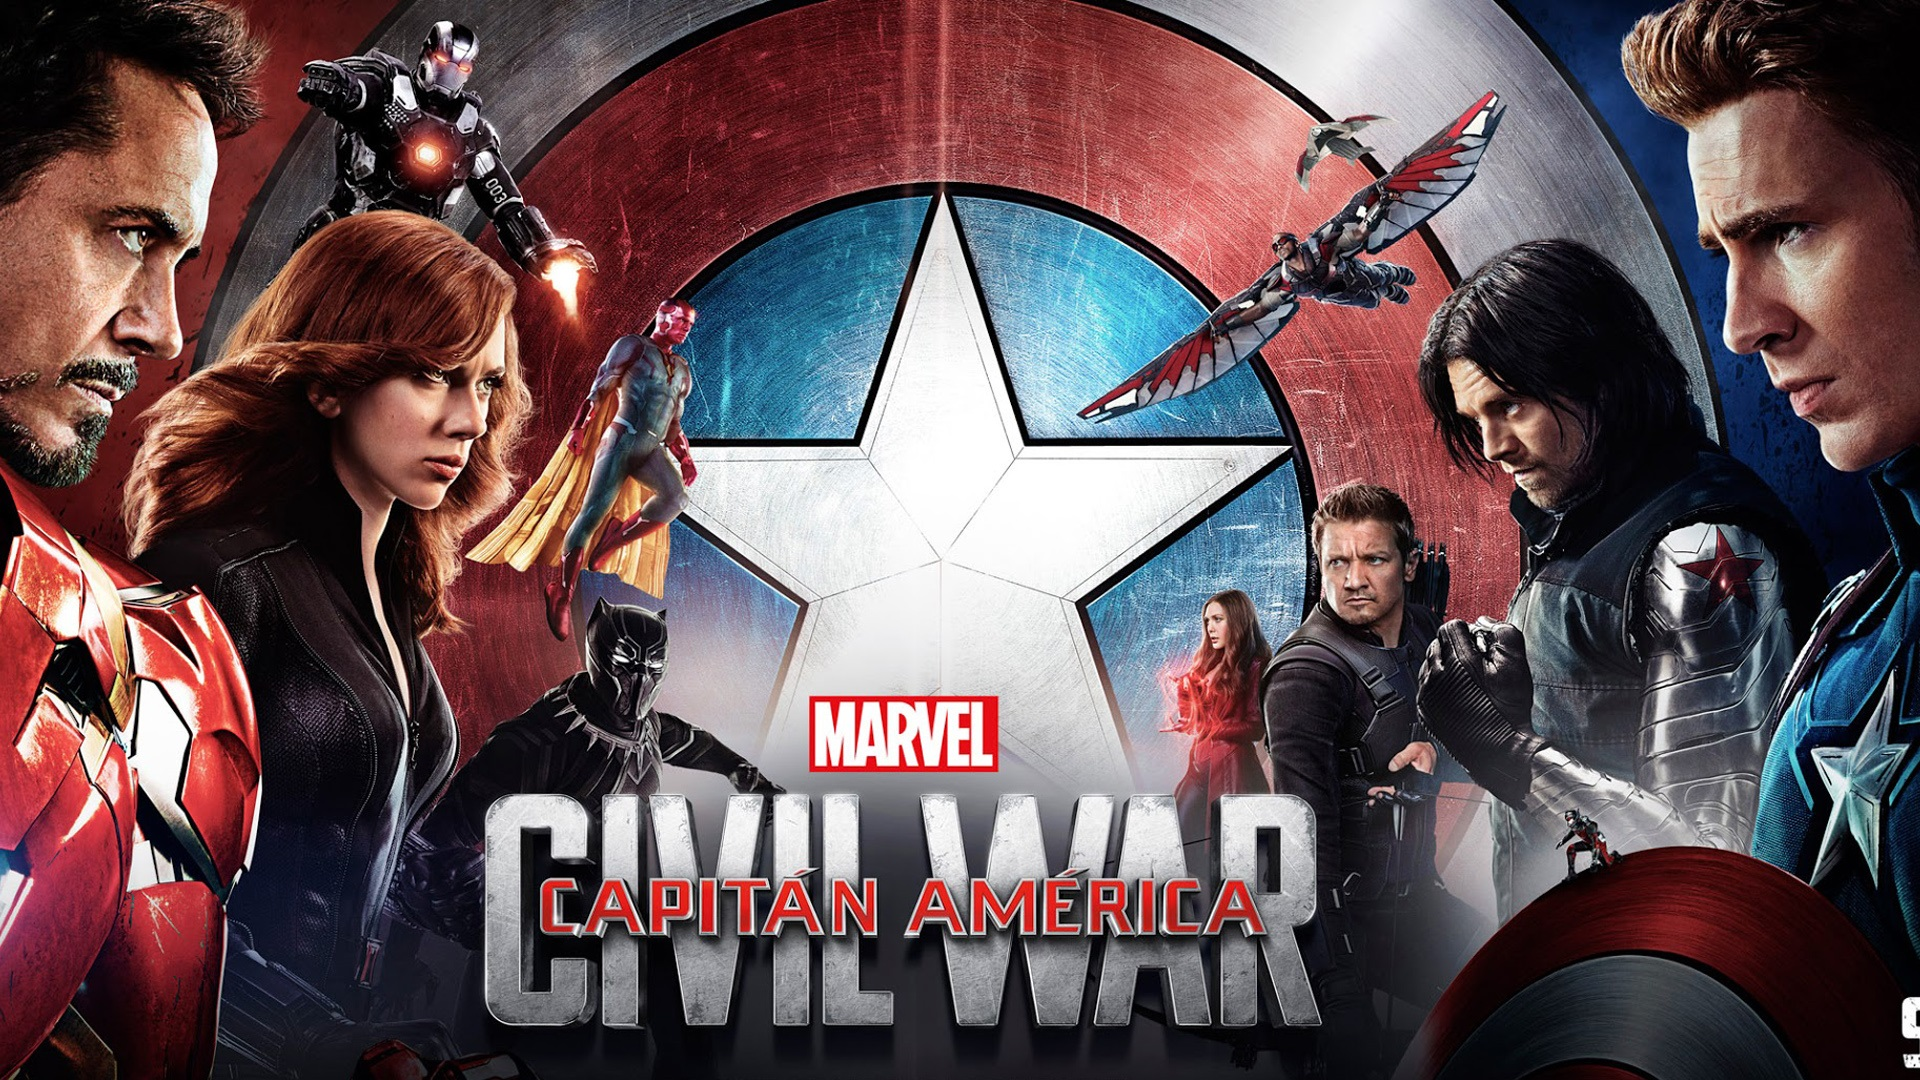 Wallpaper 2016 Movie Captain America Civil War HD 1920x1080 Full